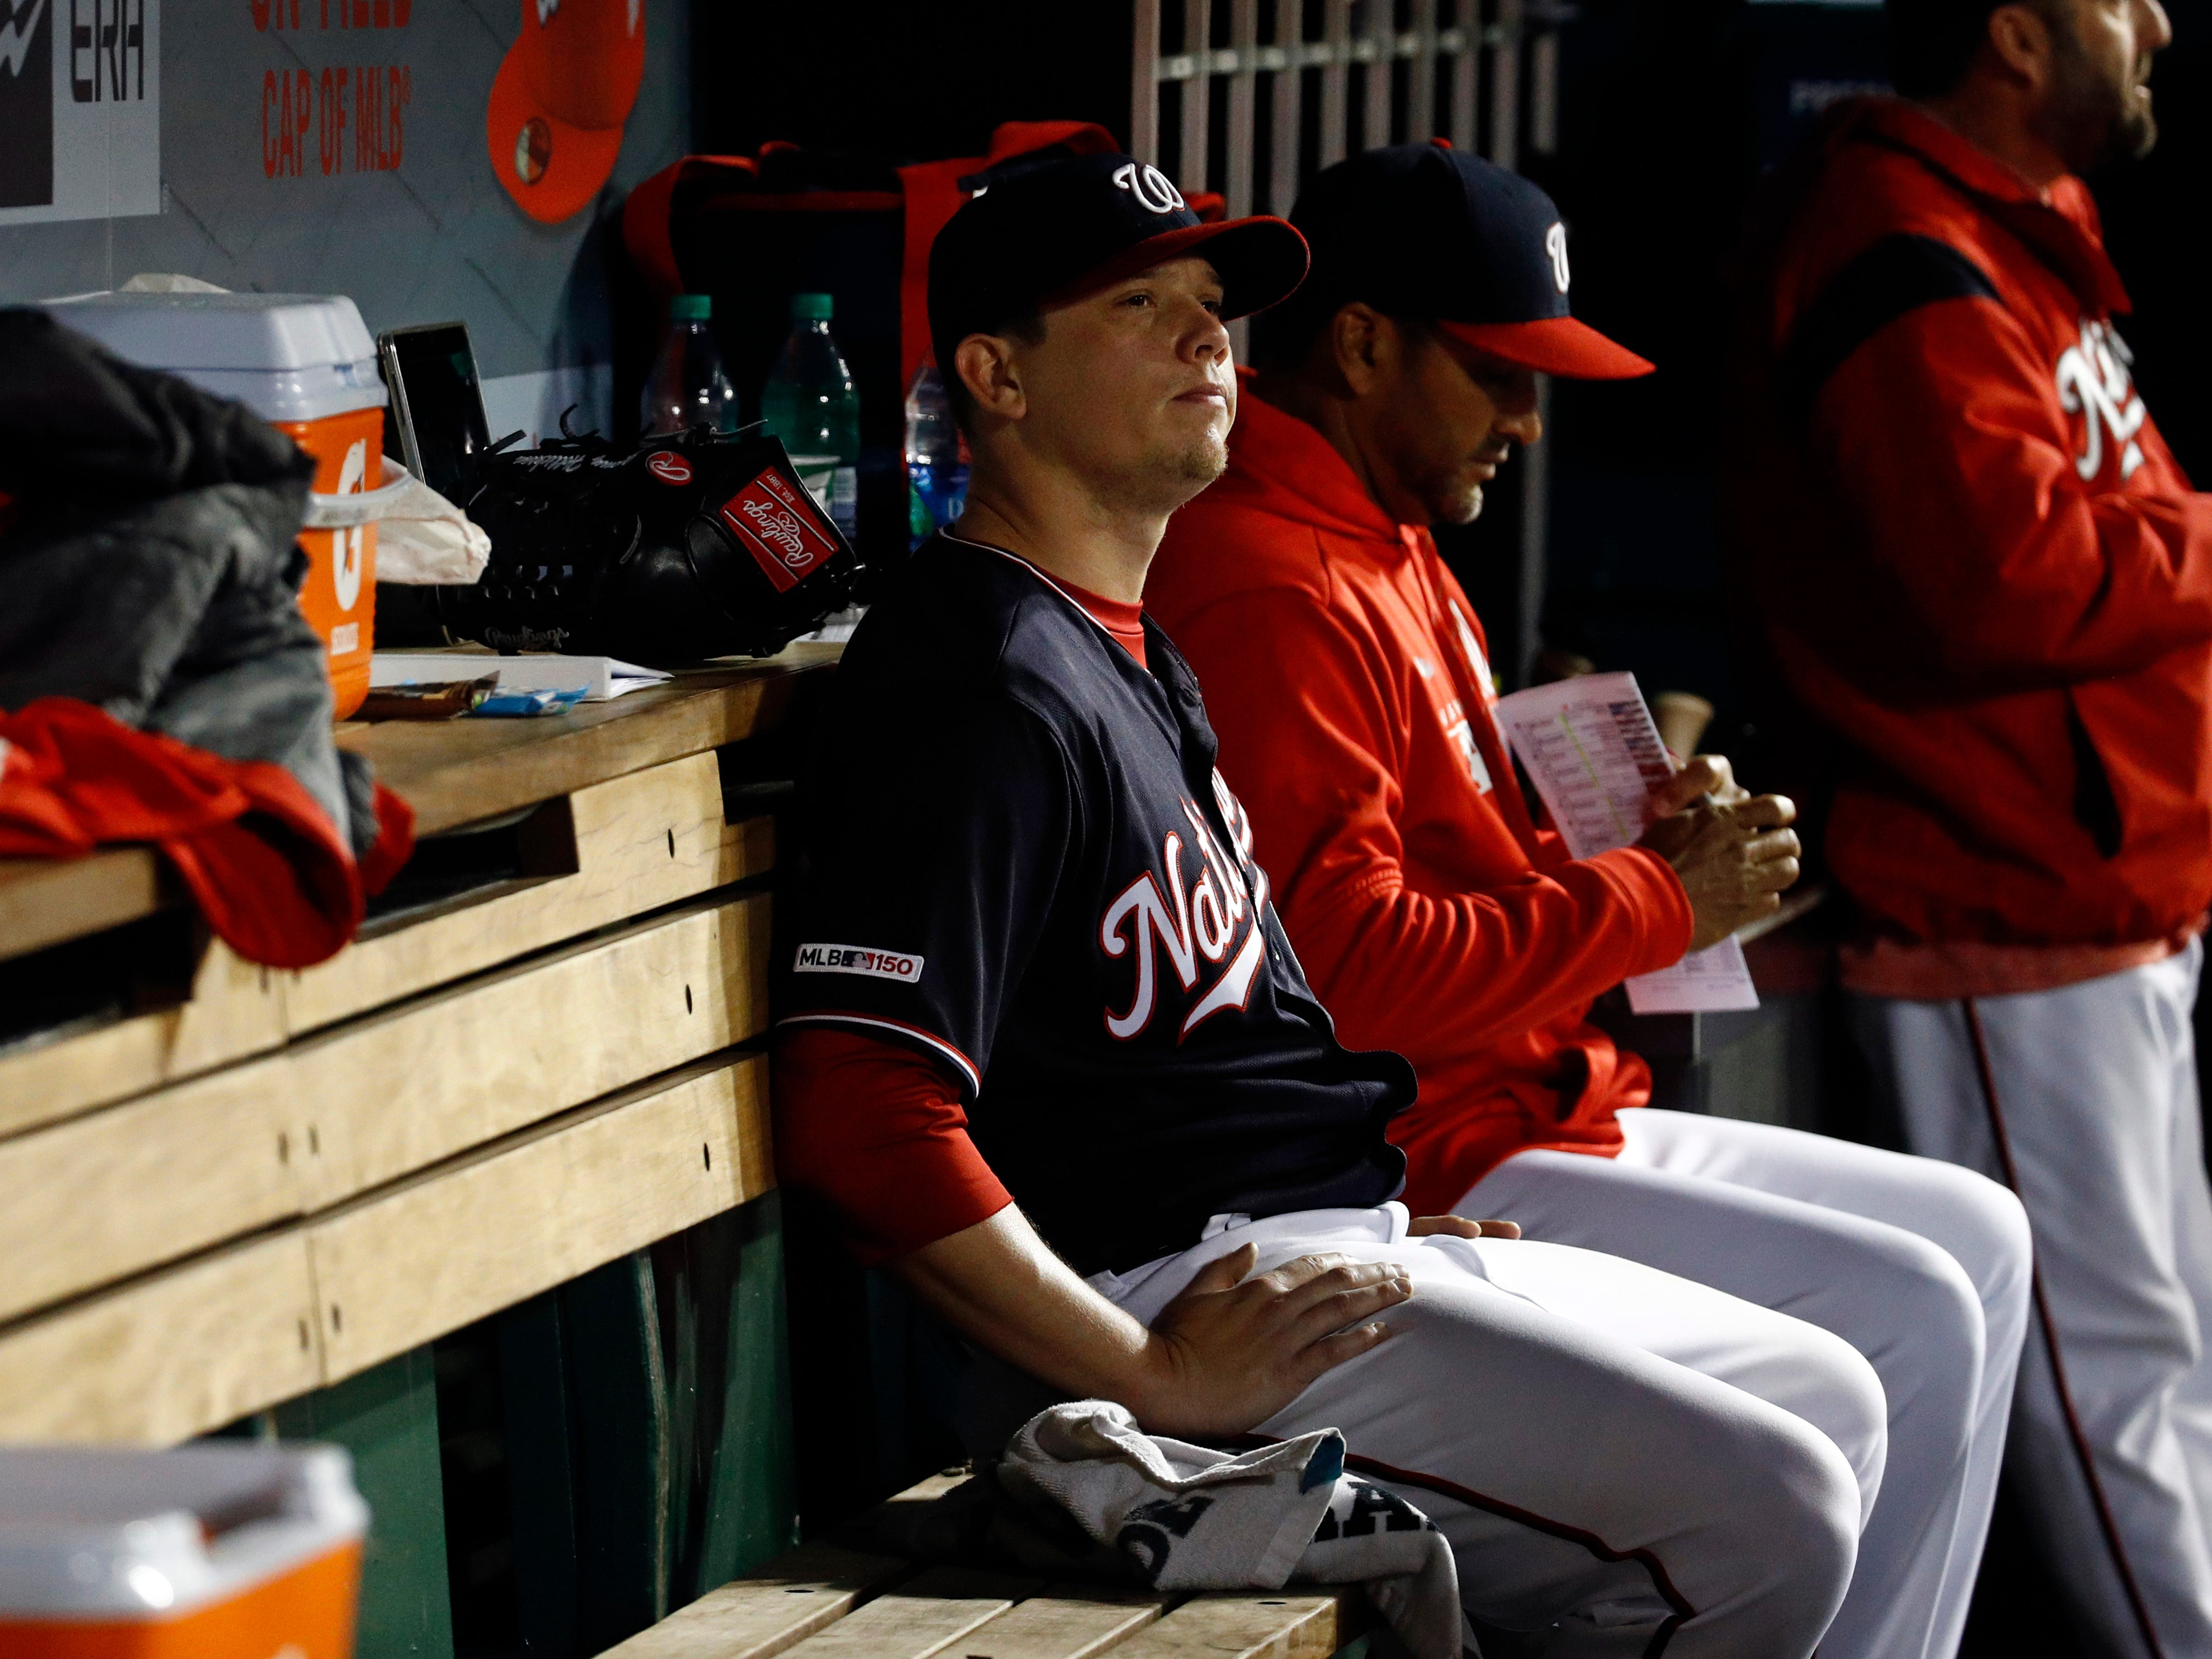 Washington Nationals starting pitcher Jeremy Hellickson, left, sits in the dugout next to manager Dave Martinez after being removed during the sixth inning of the team's game against the New York Mets, Tuesday, May 14, 2019, in Washington.